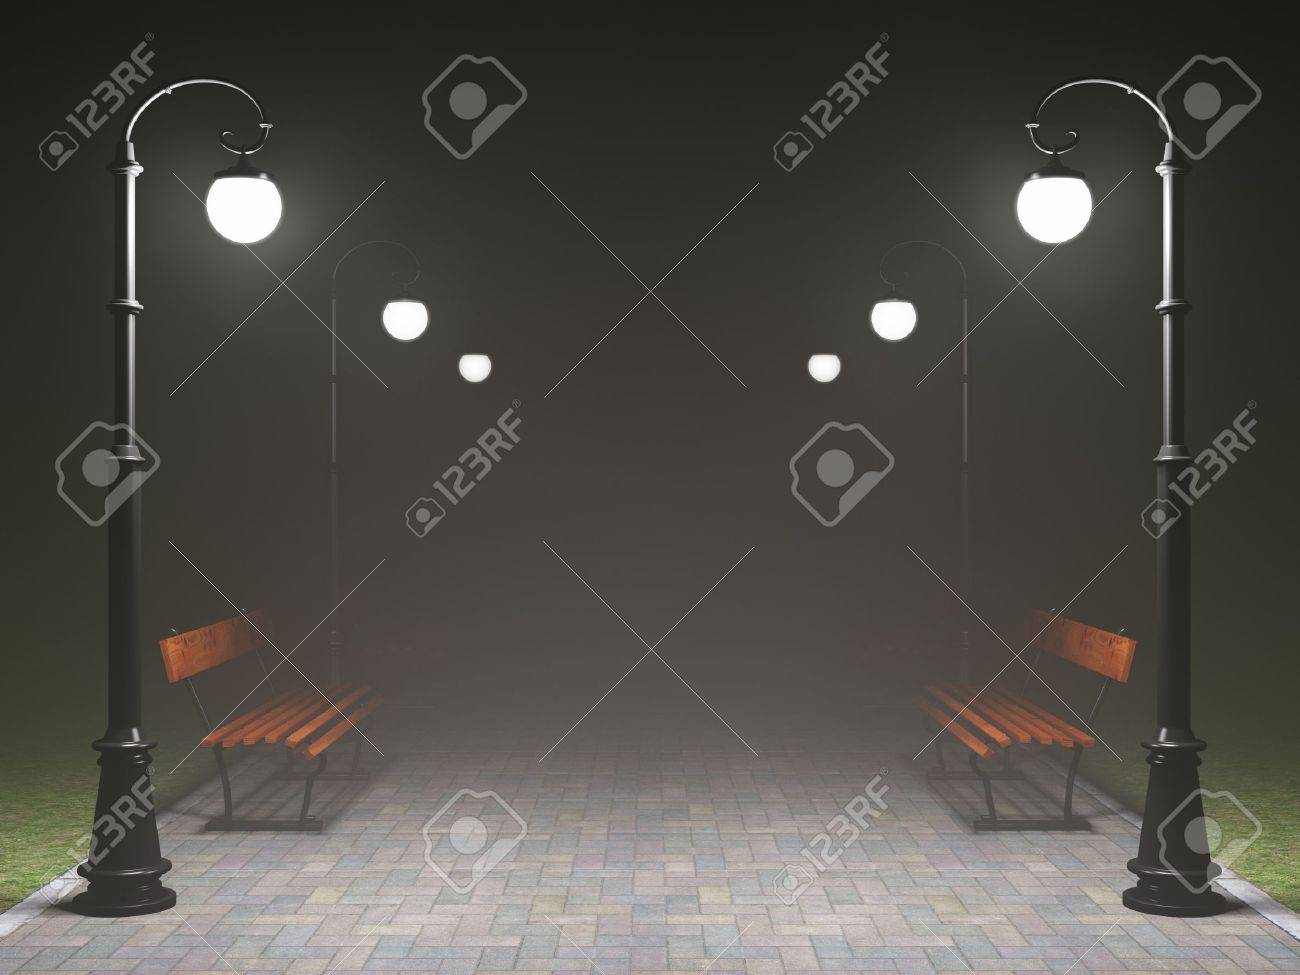 A romantic night scene. Illuminated park alley with old fashioned street light and bench Stock Photo - 12389153